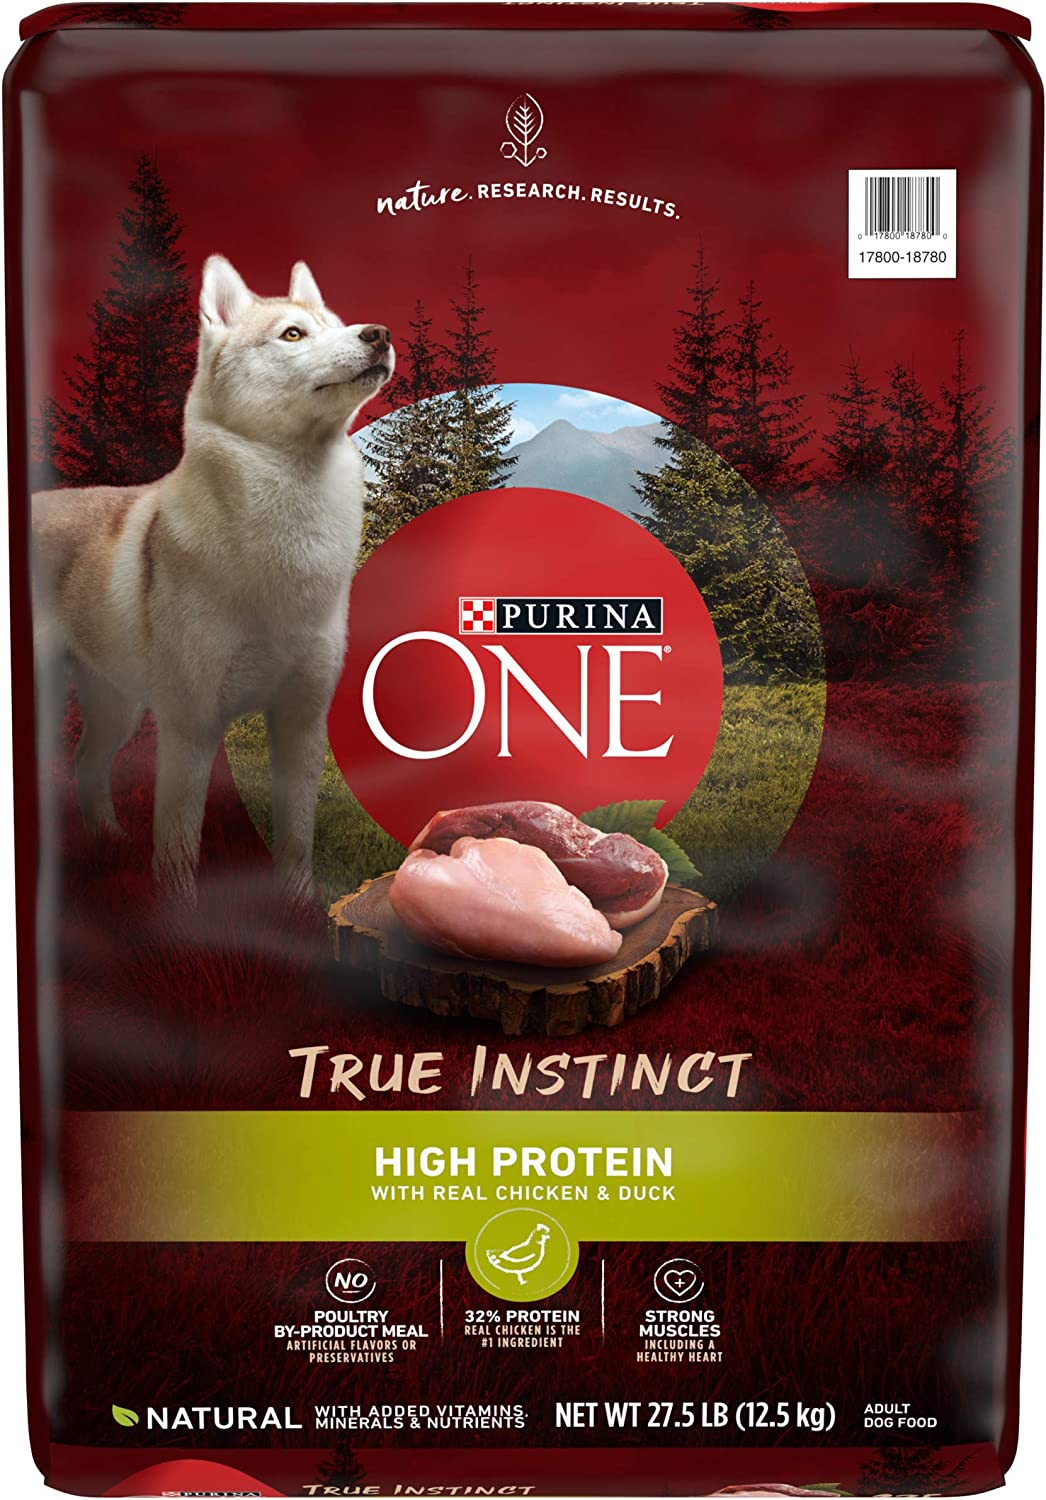 Purina ONE Natural, High Protein Dry Dog Food, True Instinct with Real Chicken & Duck - 27.5 lb. Bag